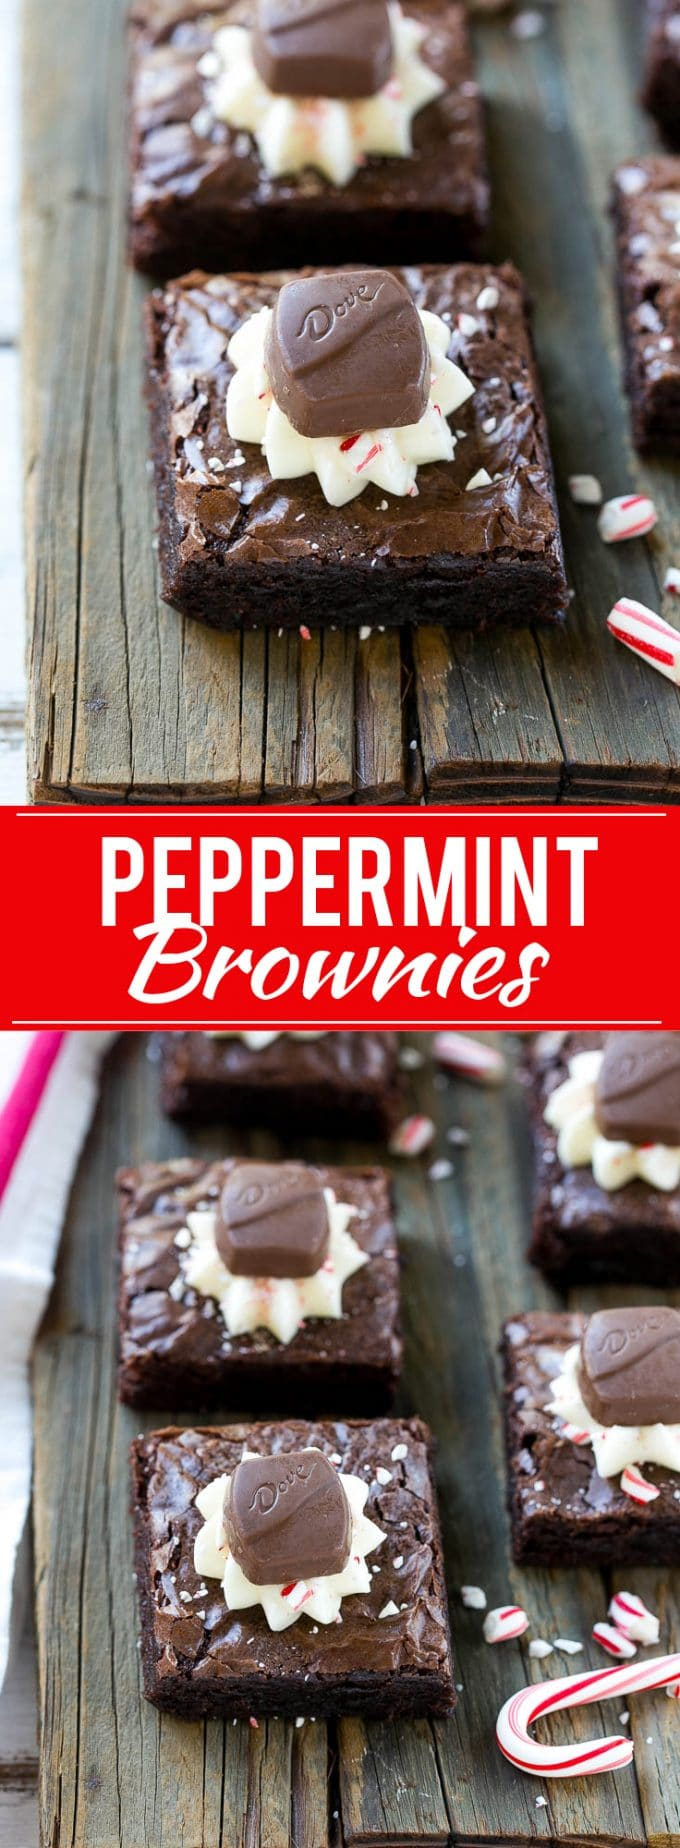 This recipe for peppermint brownies is fudgy chocolate squares topped with cream cheese frosting and chopped candy canes. The perfect holiday treat! #ad